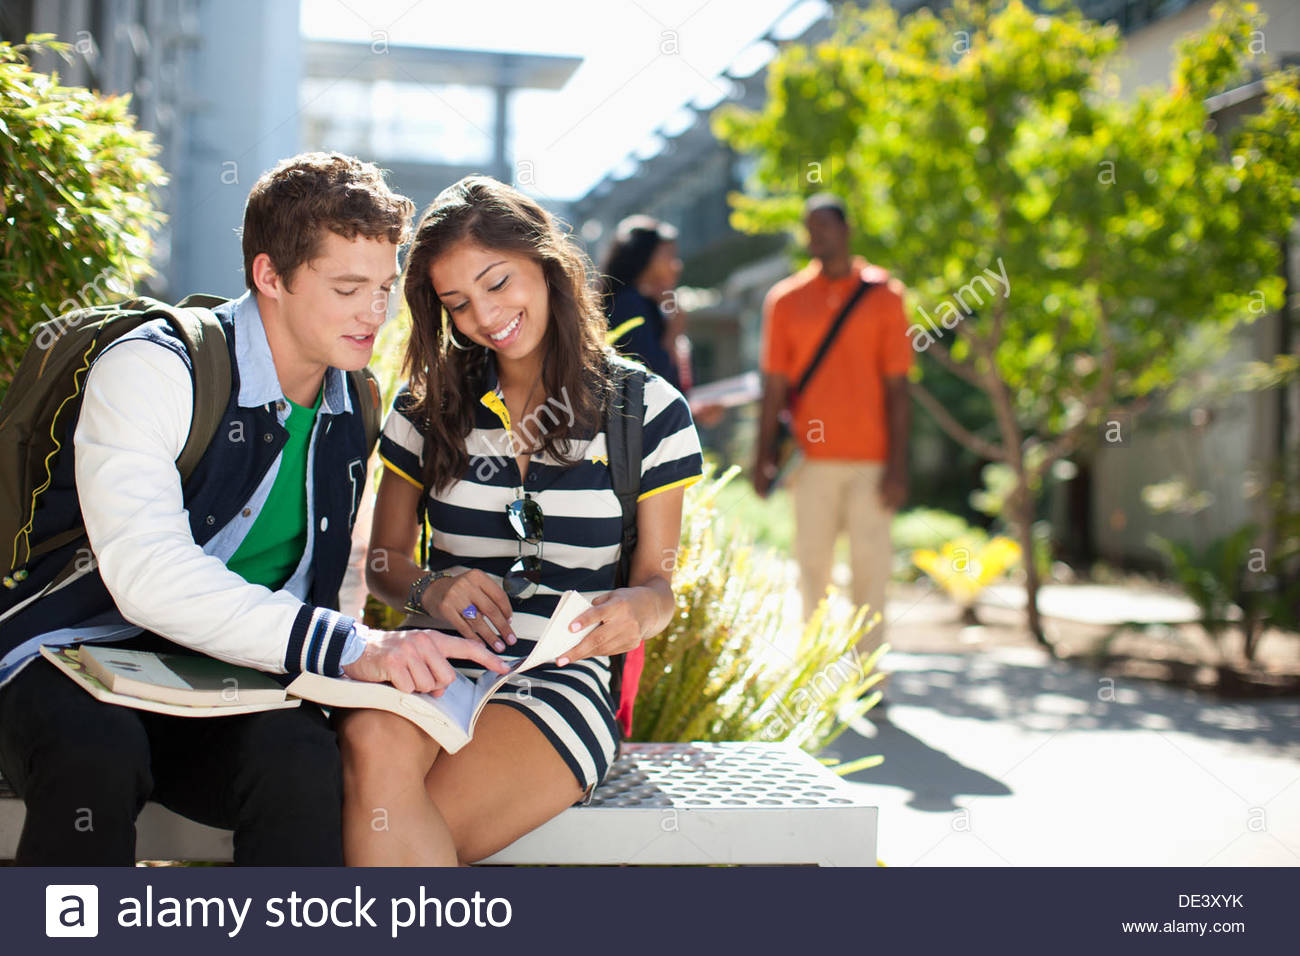 Students reading book together outdoors - Stock Image